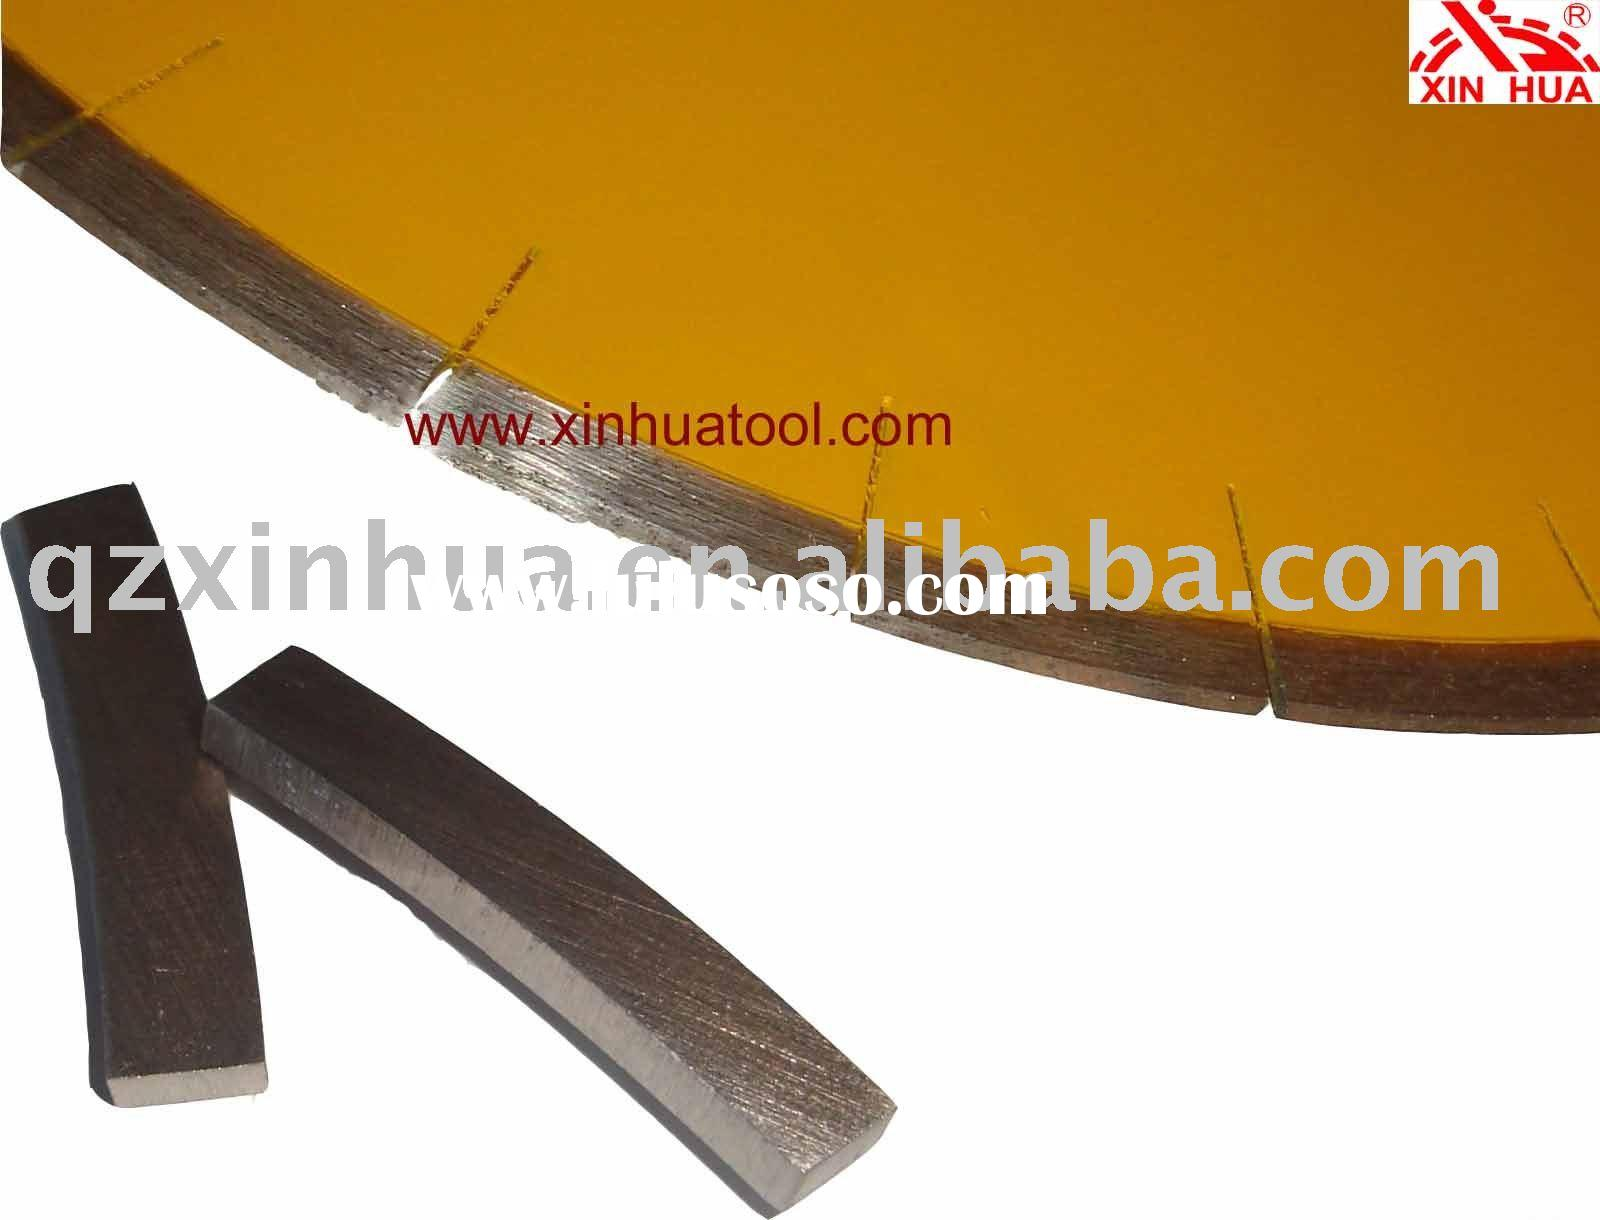 saw blade,stone cutter,diamond saw blade